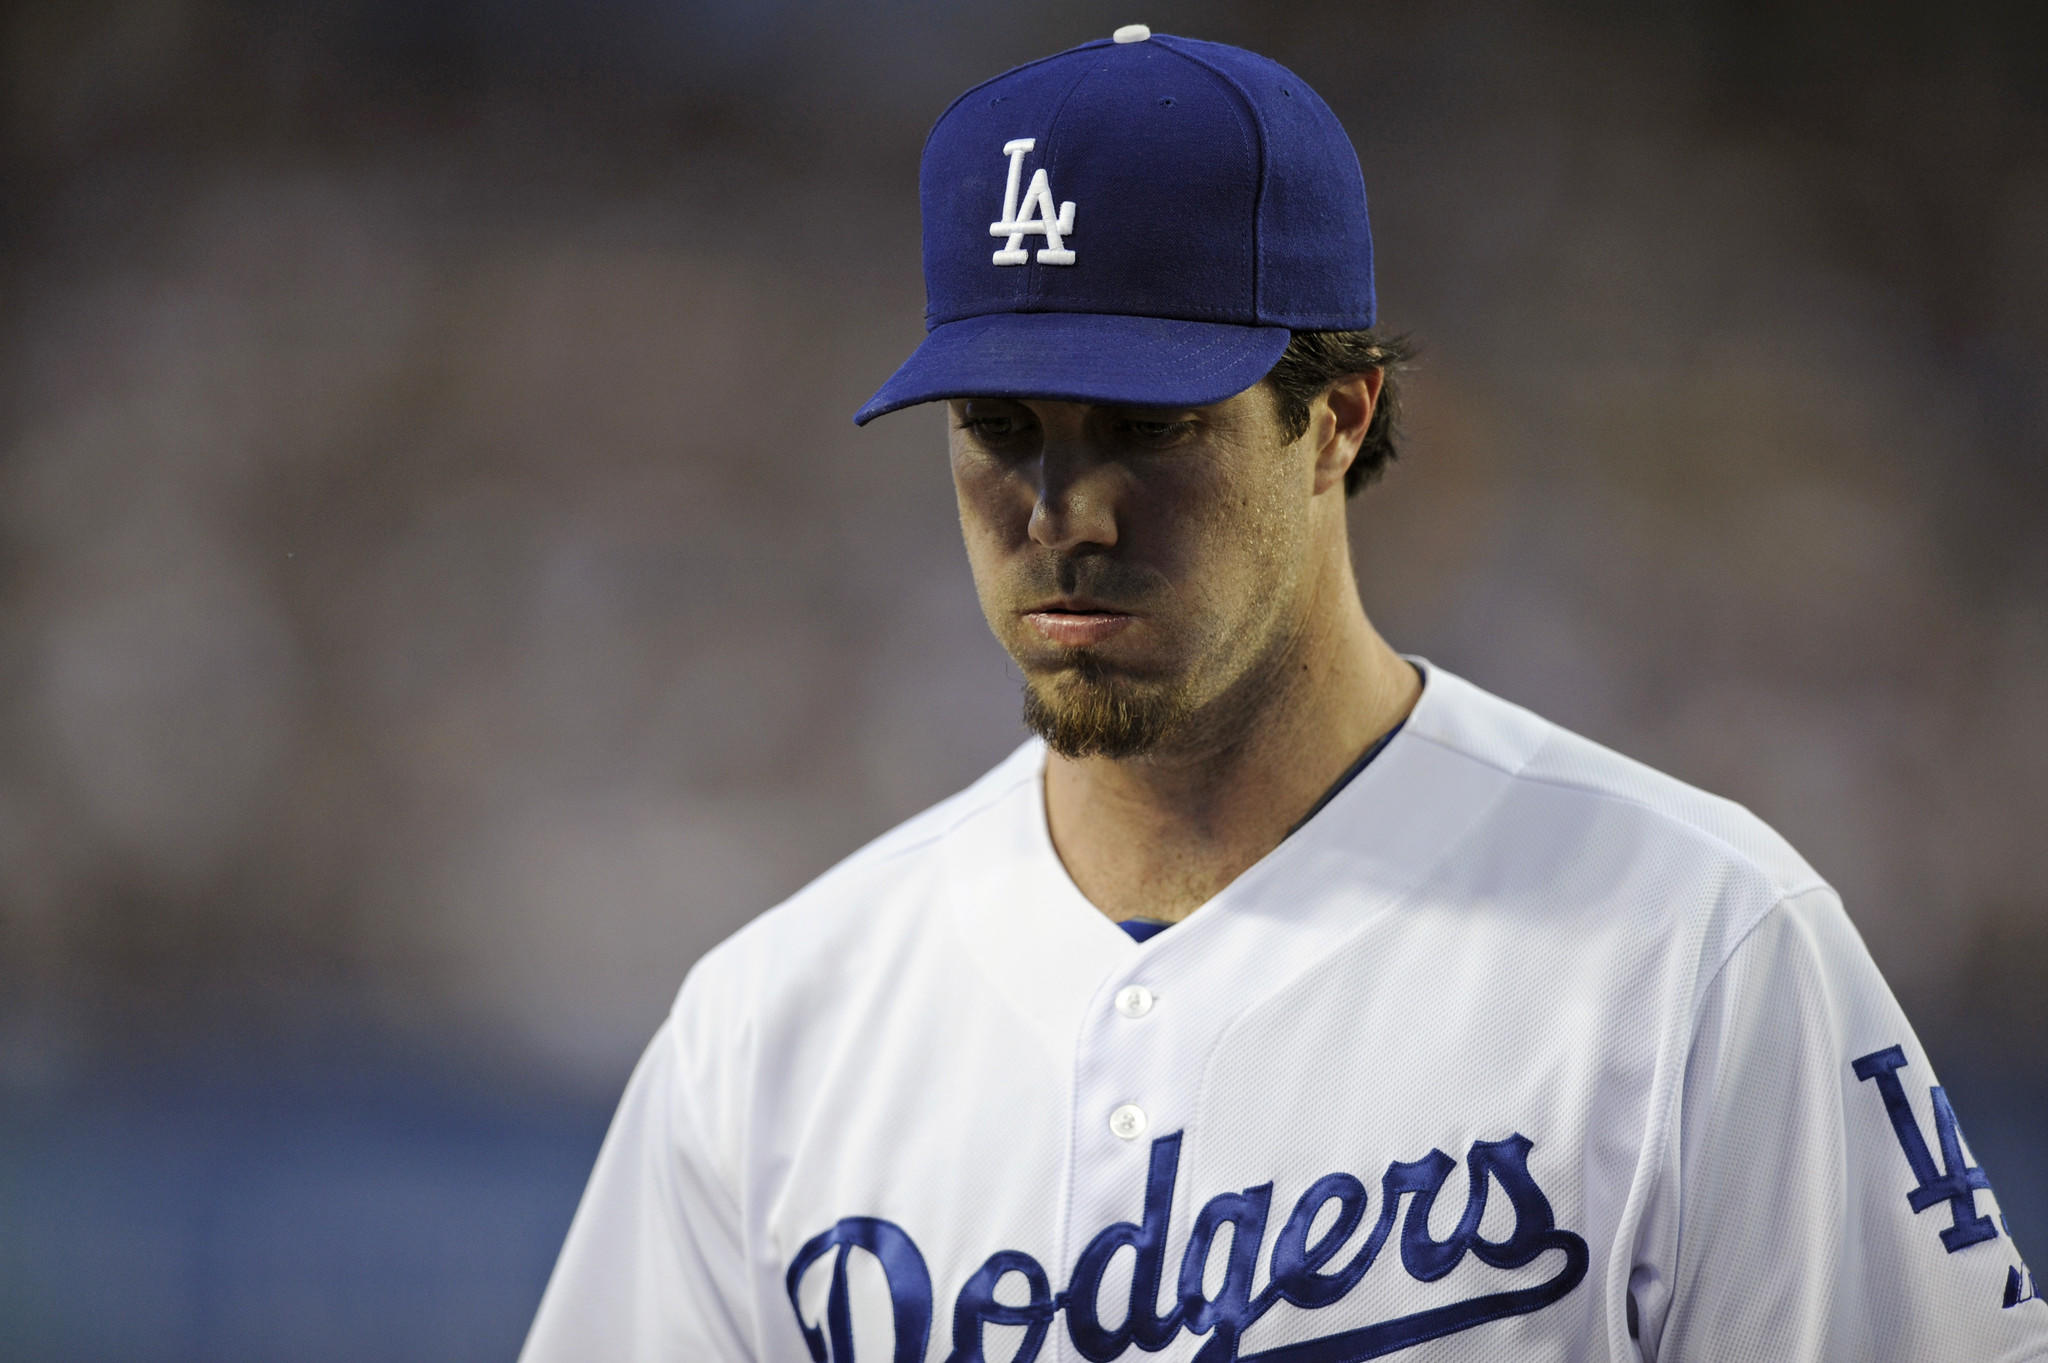 Los Angeles Dodgers starting pitcher Dan Haren is seen during Tuesday's game against the Tigers, which aired on SportsNet LA, distributed by Time Warner Cable. Negotiations with DirecTV over the channel have been contentious.